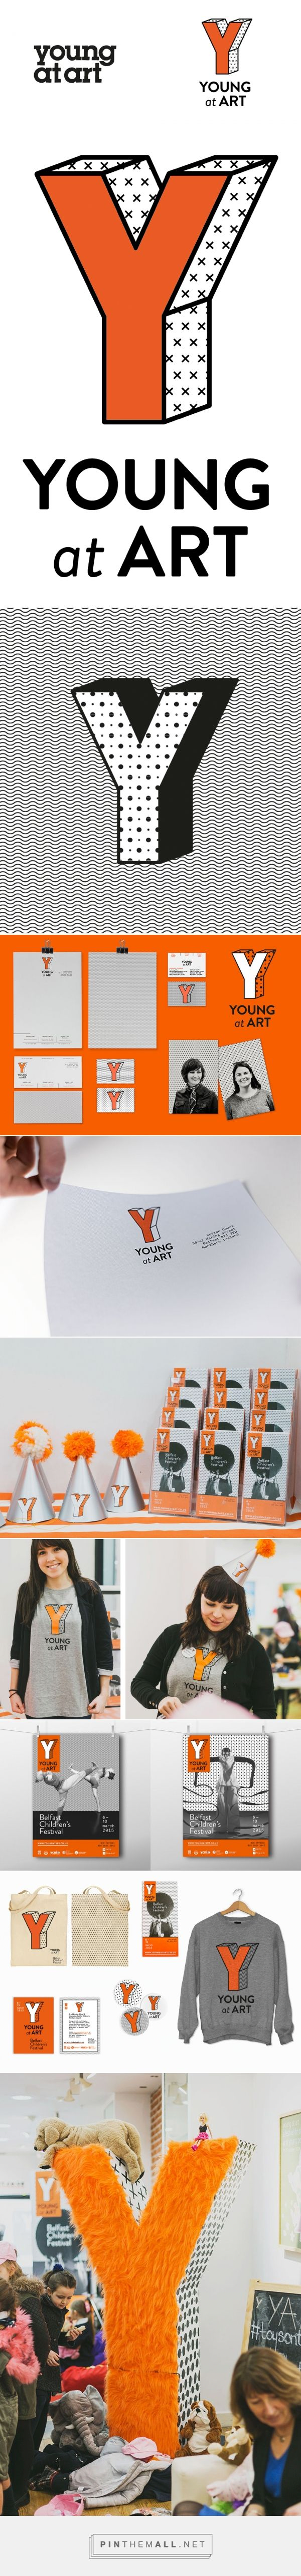 Brand New: New Logo and Identity for Young at Art by Paperjam